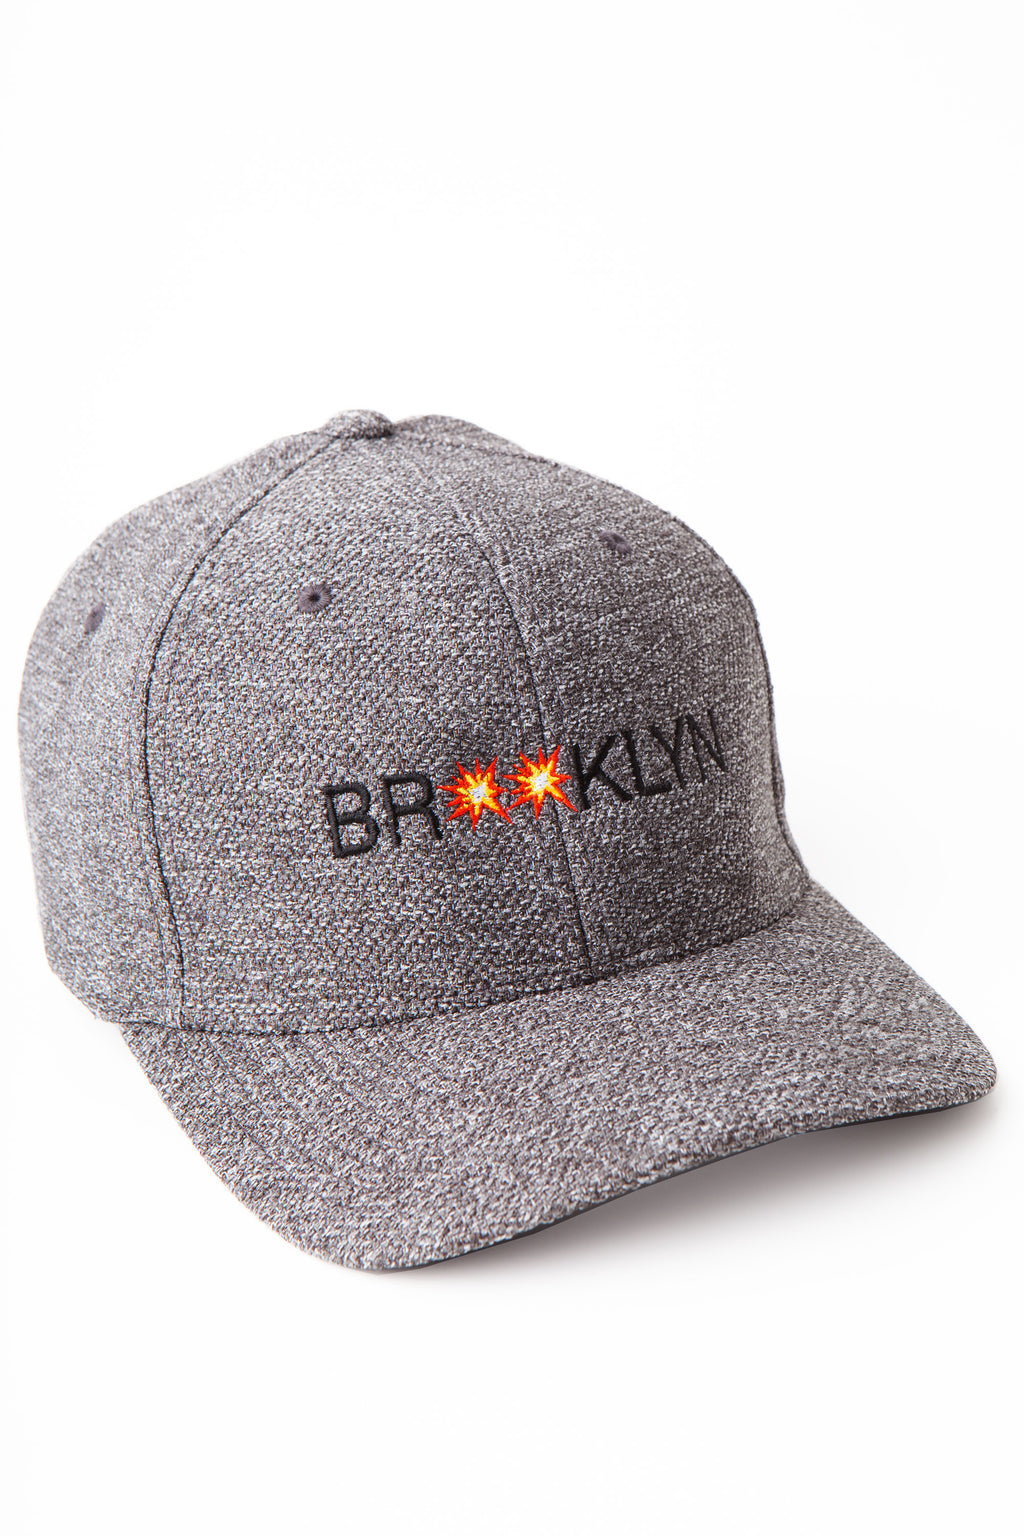 Dark grey heathered baseball cap with the words Brooklyn in black embroidered across the front.  The two o's of Brooklyn are small explosions.